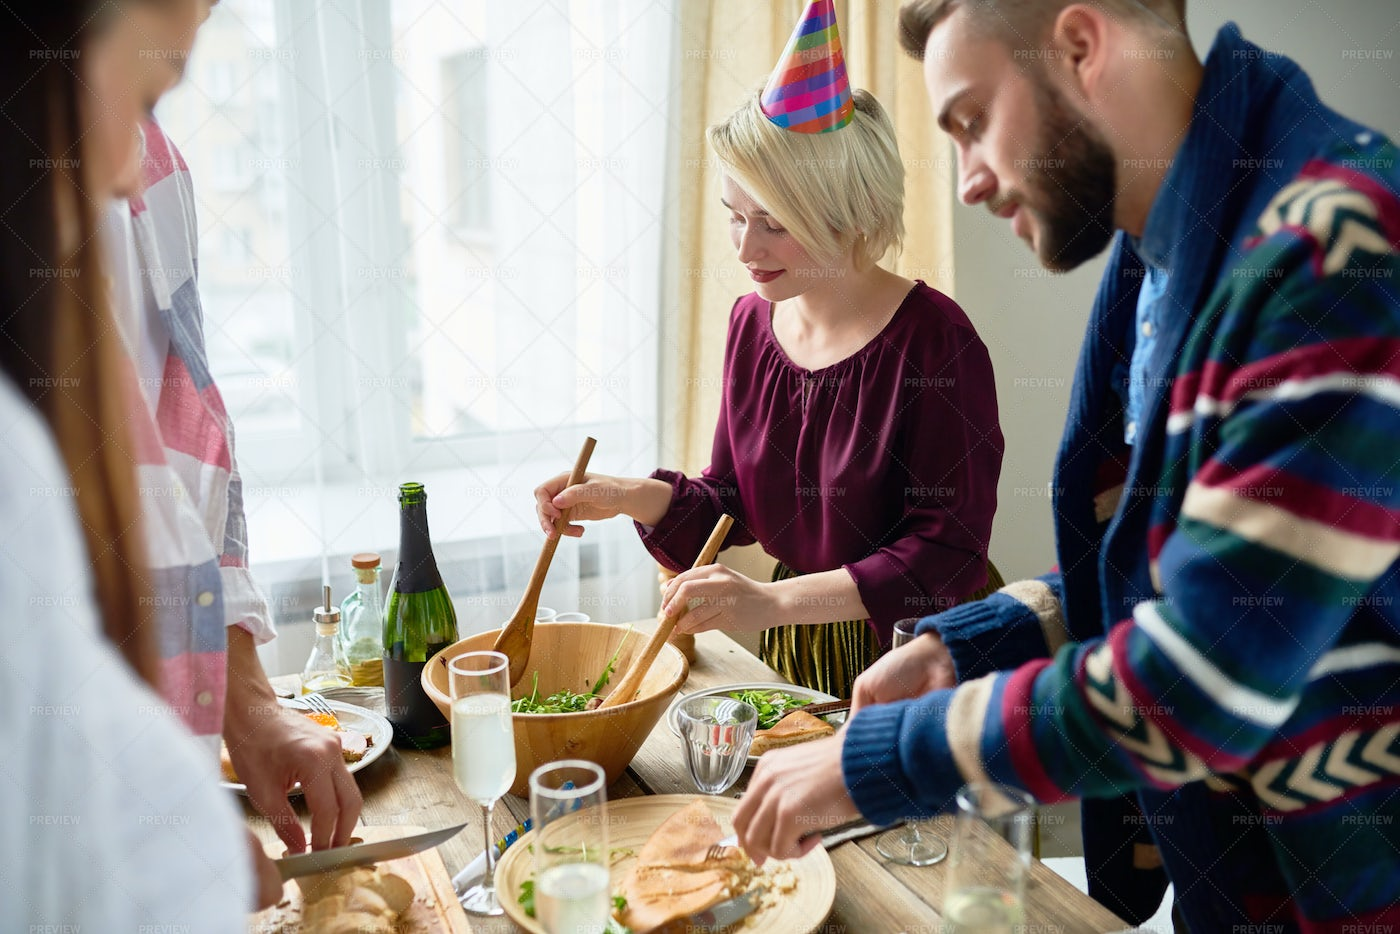 Group Of Friends At Dinner Party: Stock Photos